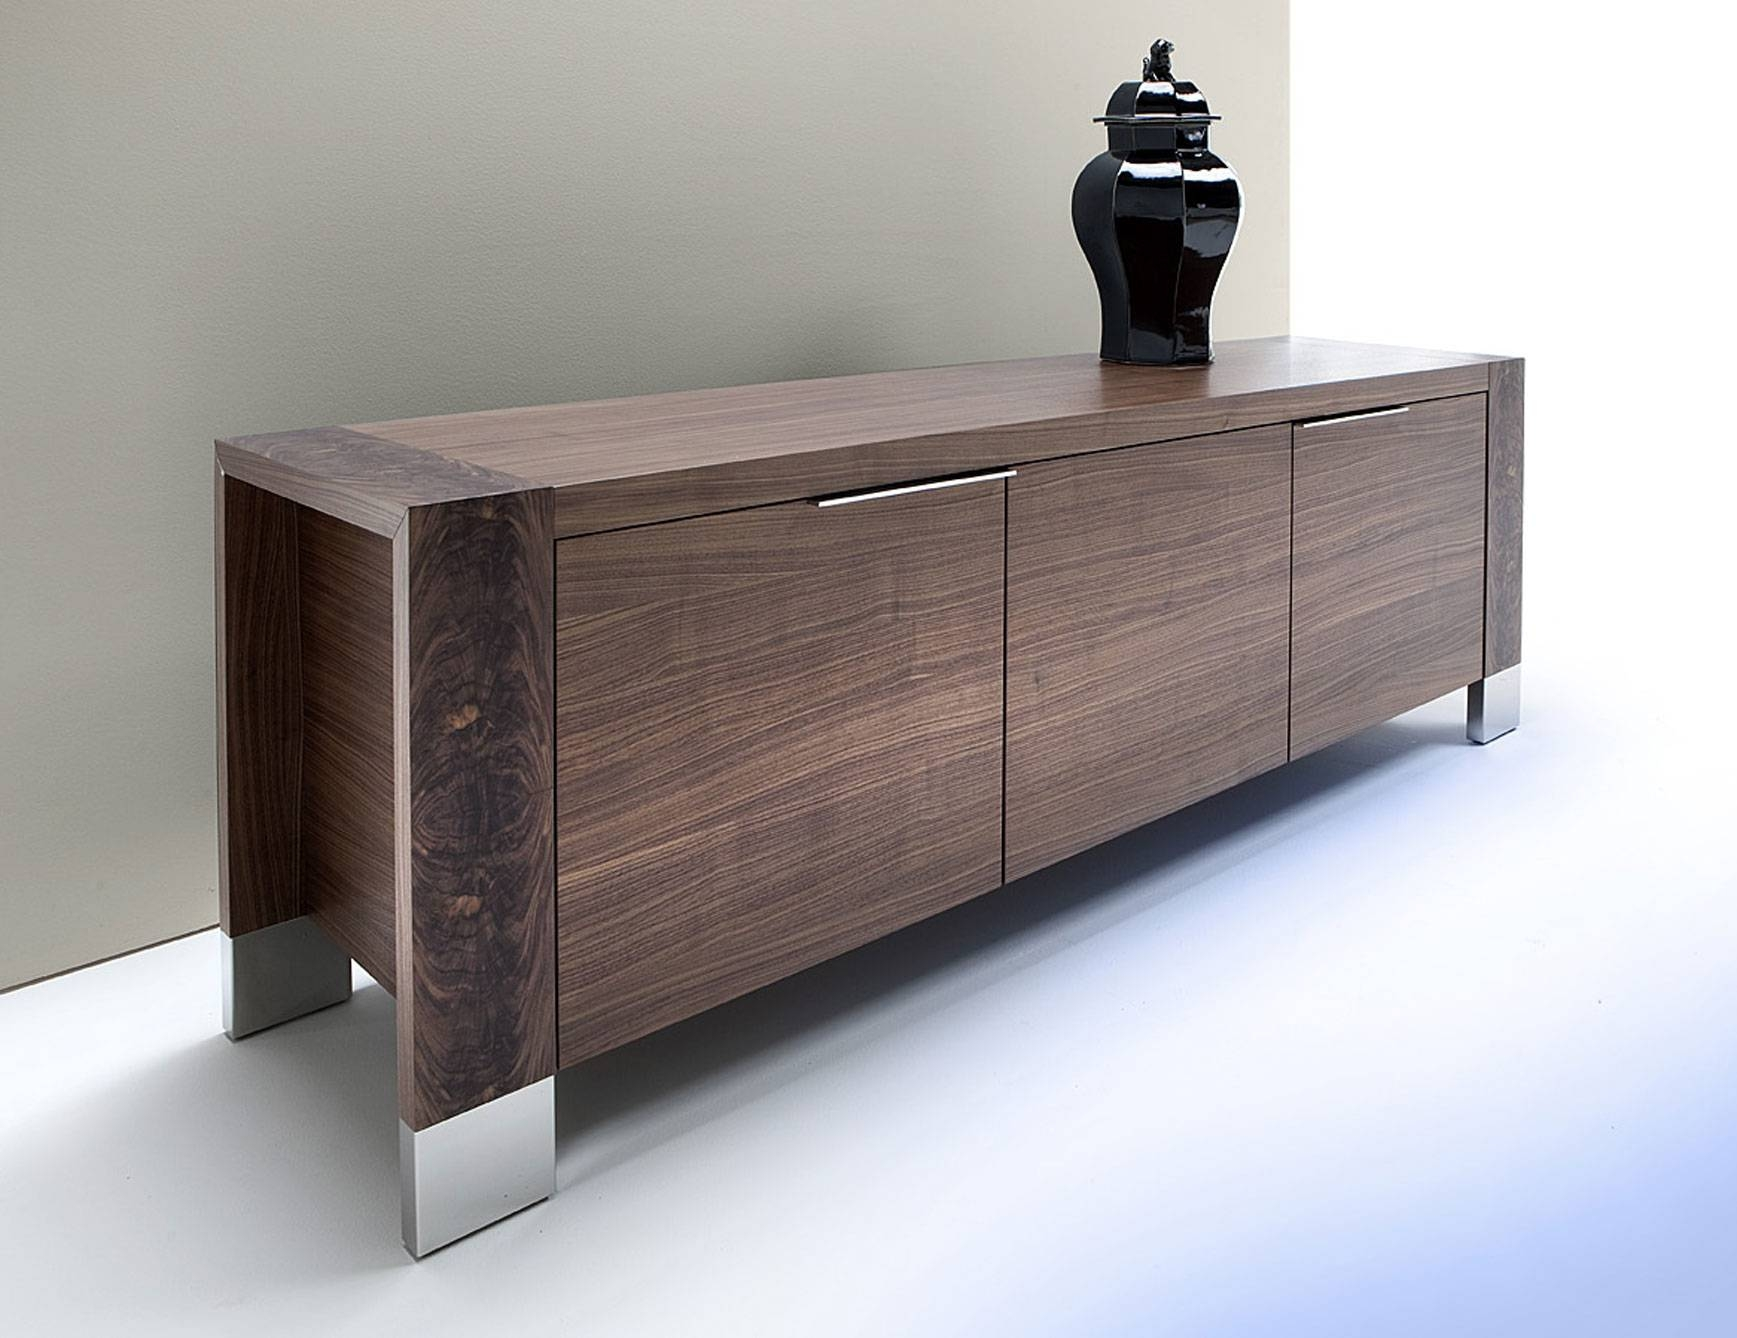 New Credenzas And Sideboards – Bjdgjy Intended For Most Recently Released Credenza Buffet Sideboards (View 15 of 15)